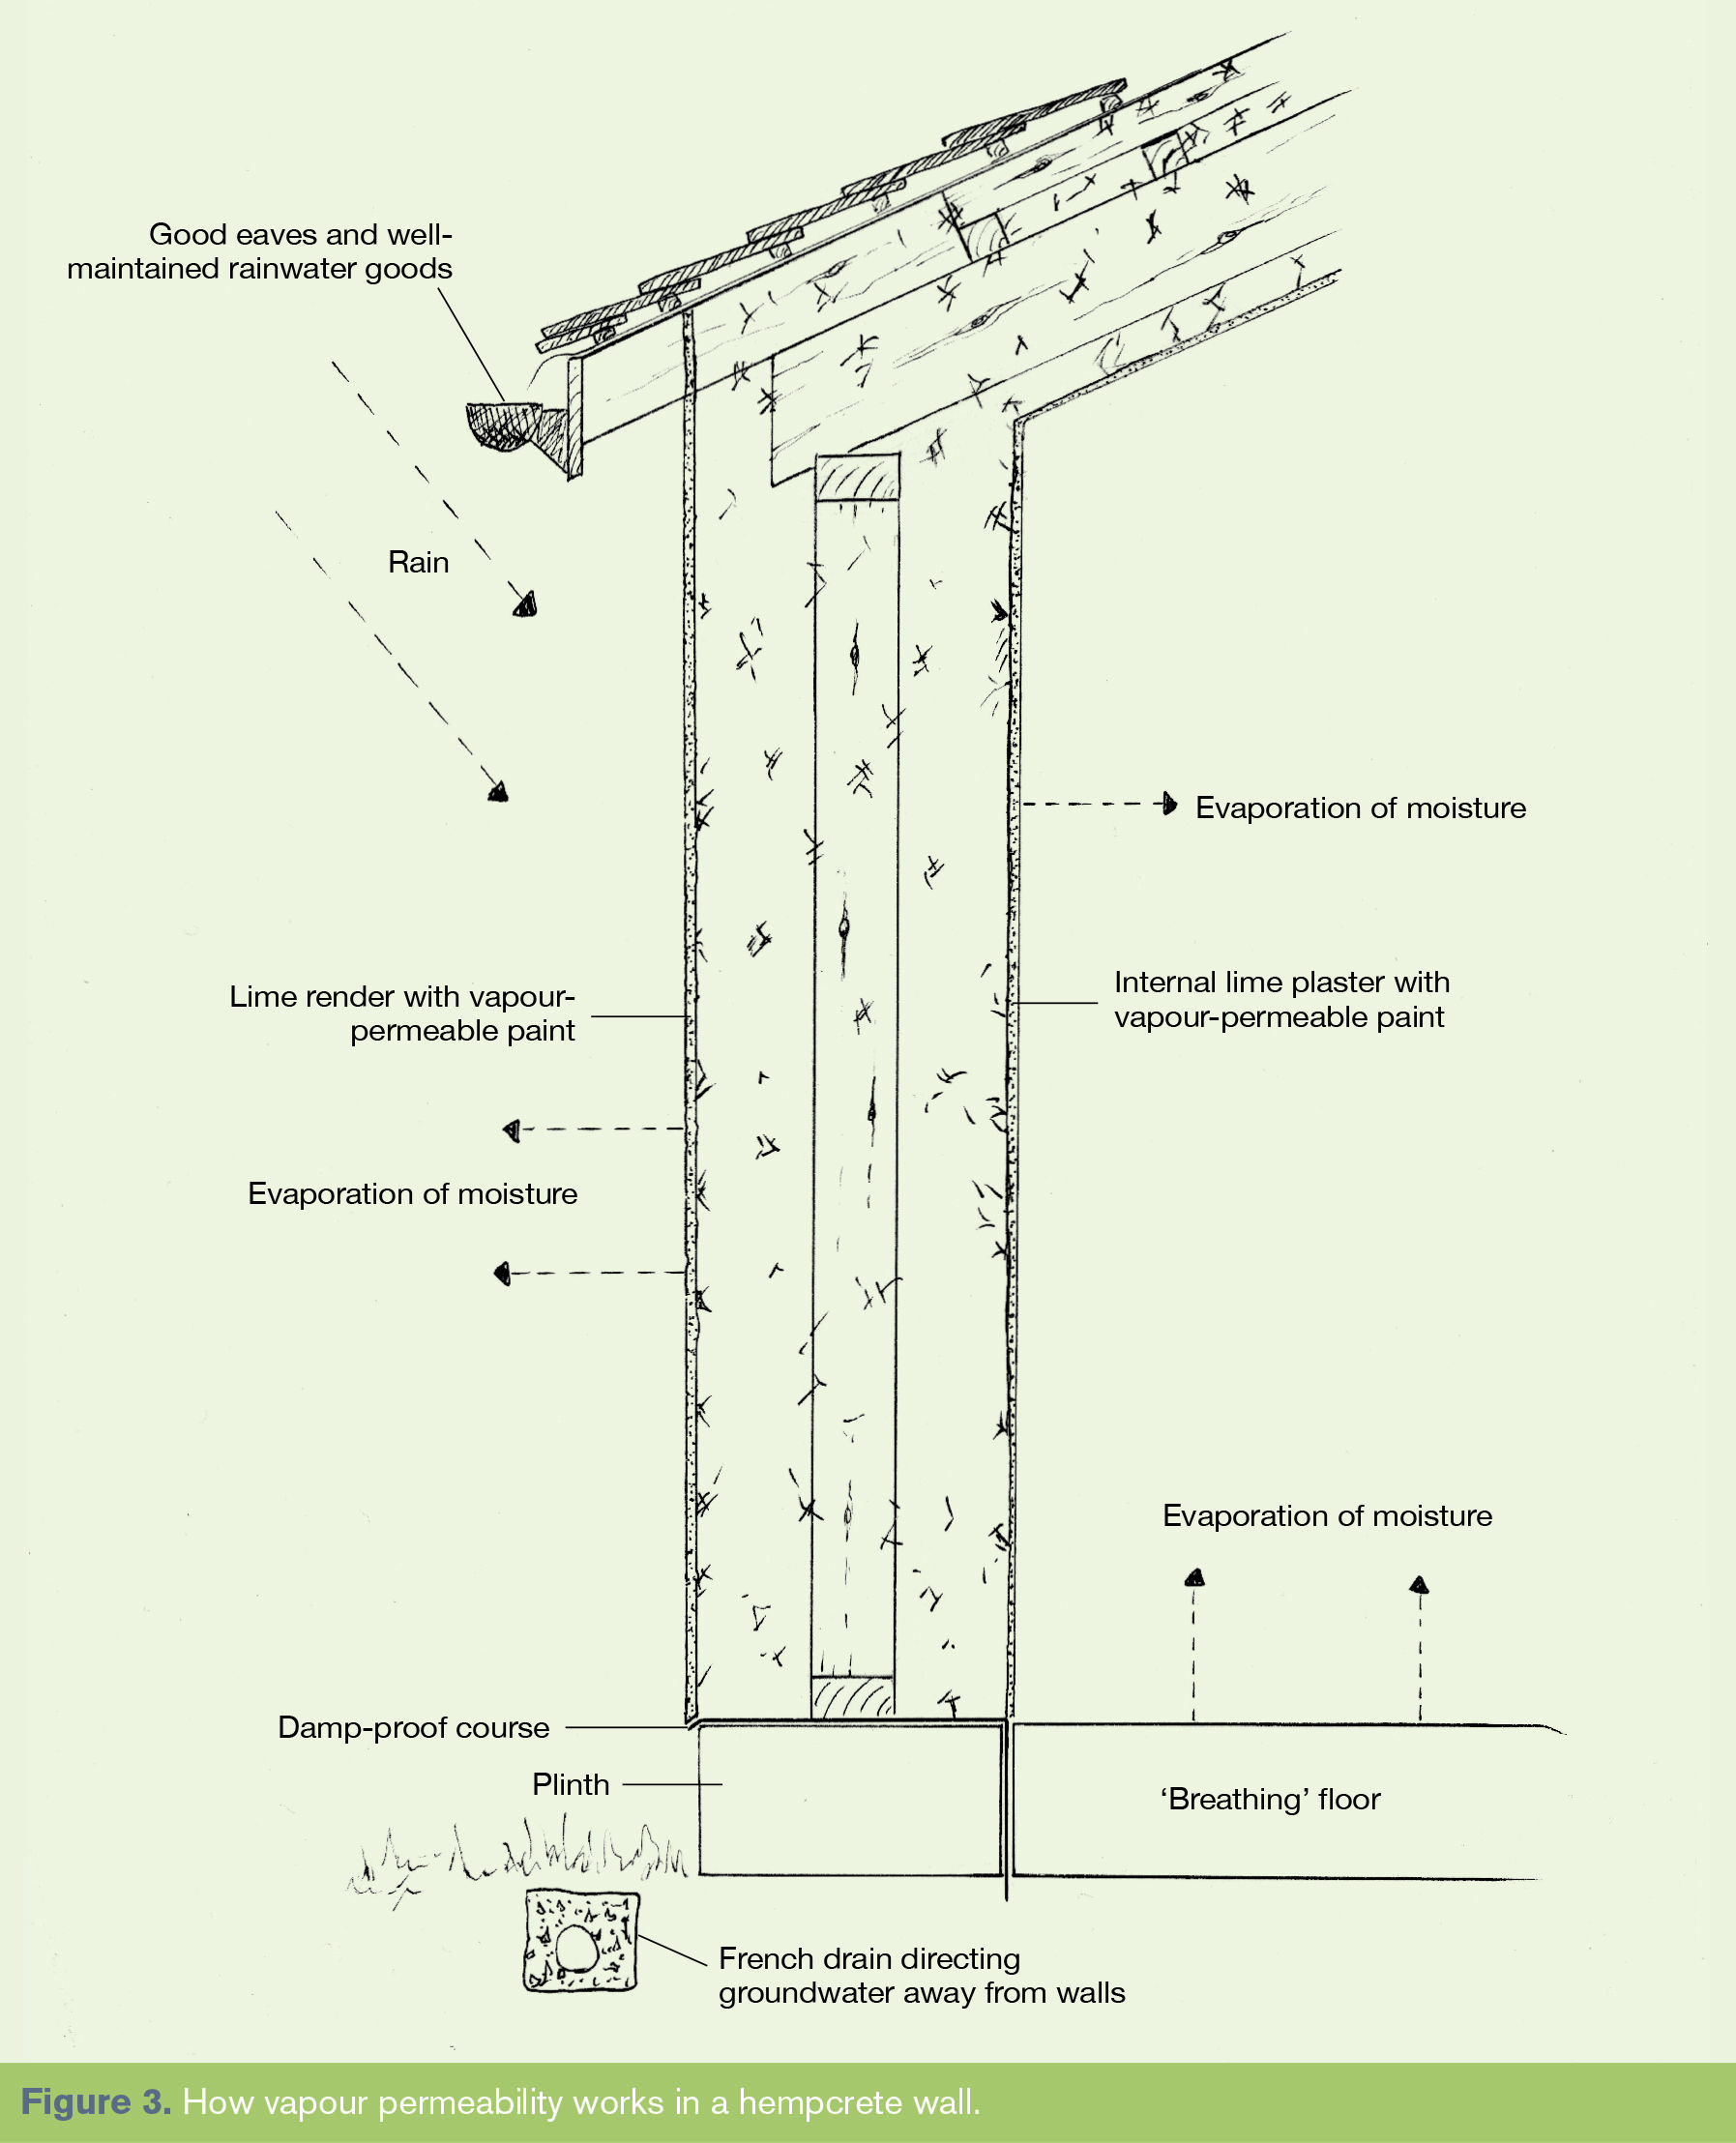 How Vapor Permeability Works On A Hempcrete Wall Image By William Stanwix Natural Building Design Zero Energy House